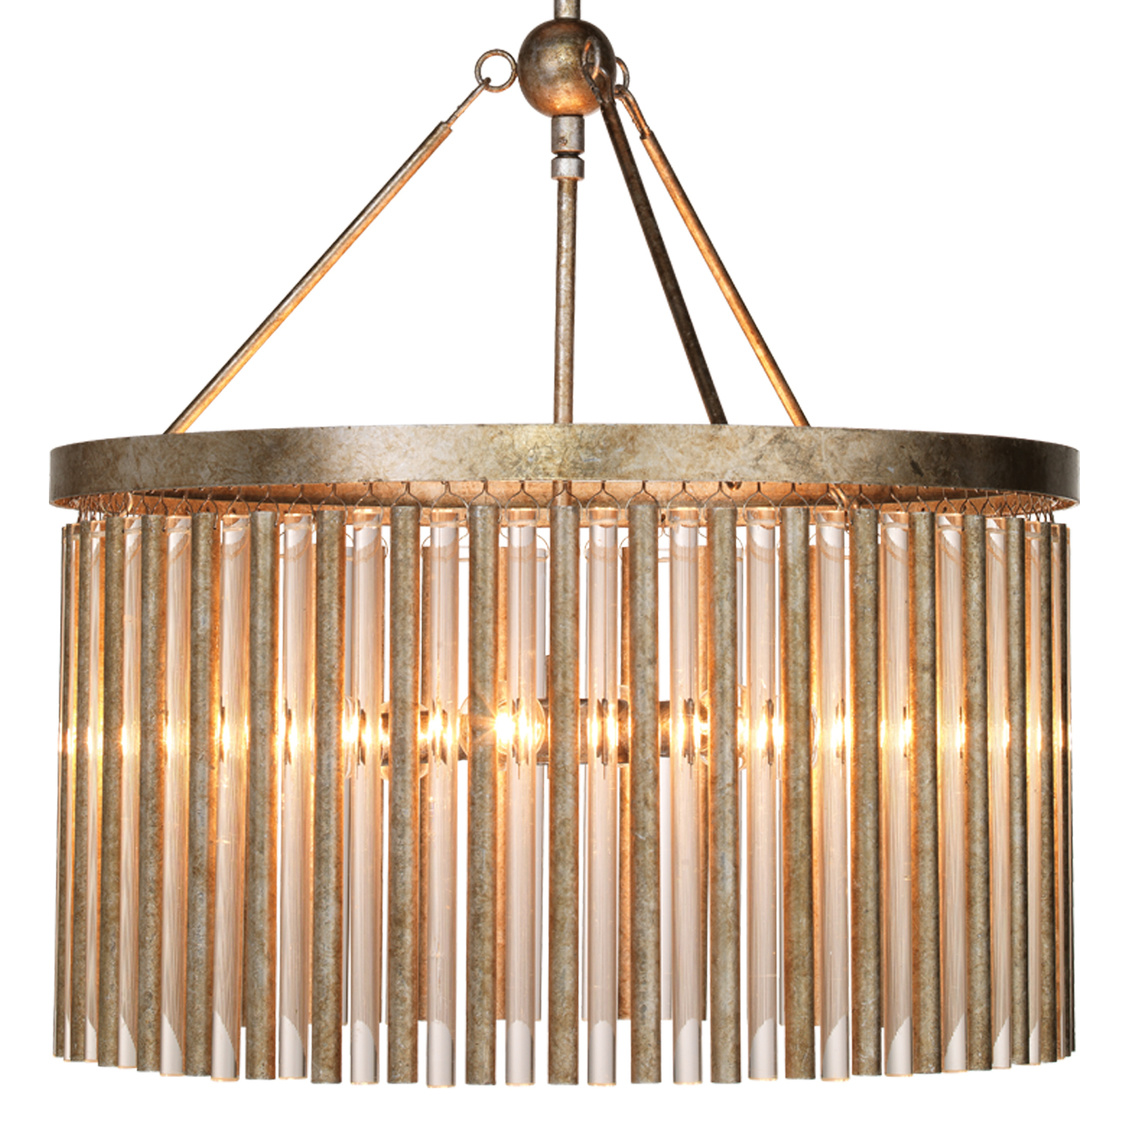 5andr chch 1809andromedachandelier champagne front lit%20copy